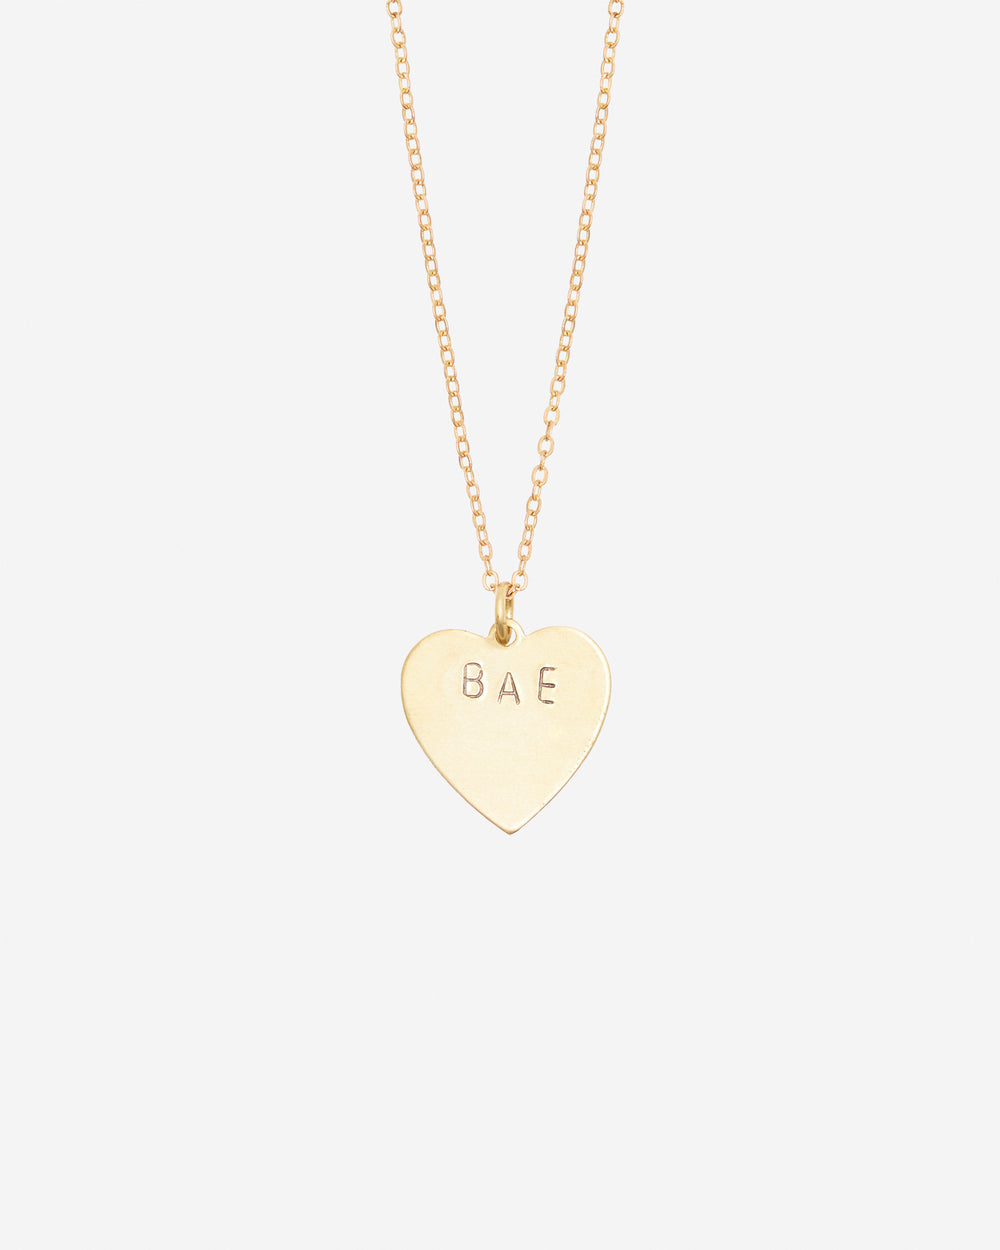 Bae Hand-Stamped Necklace